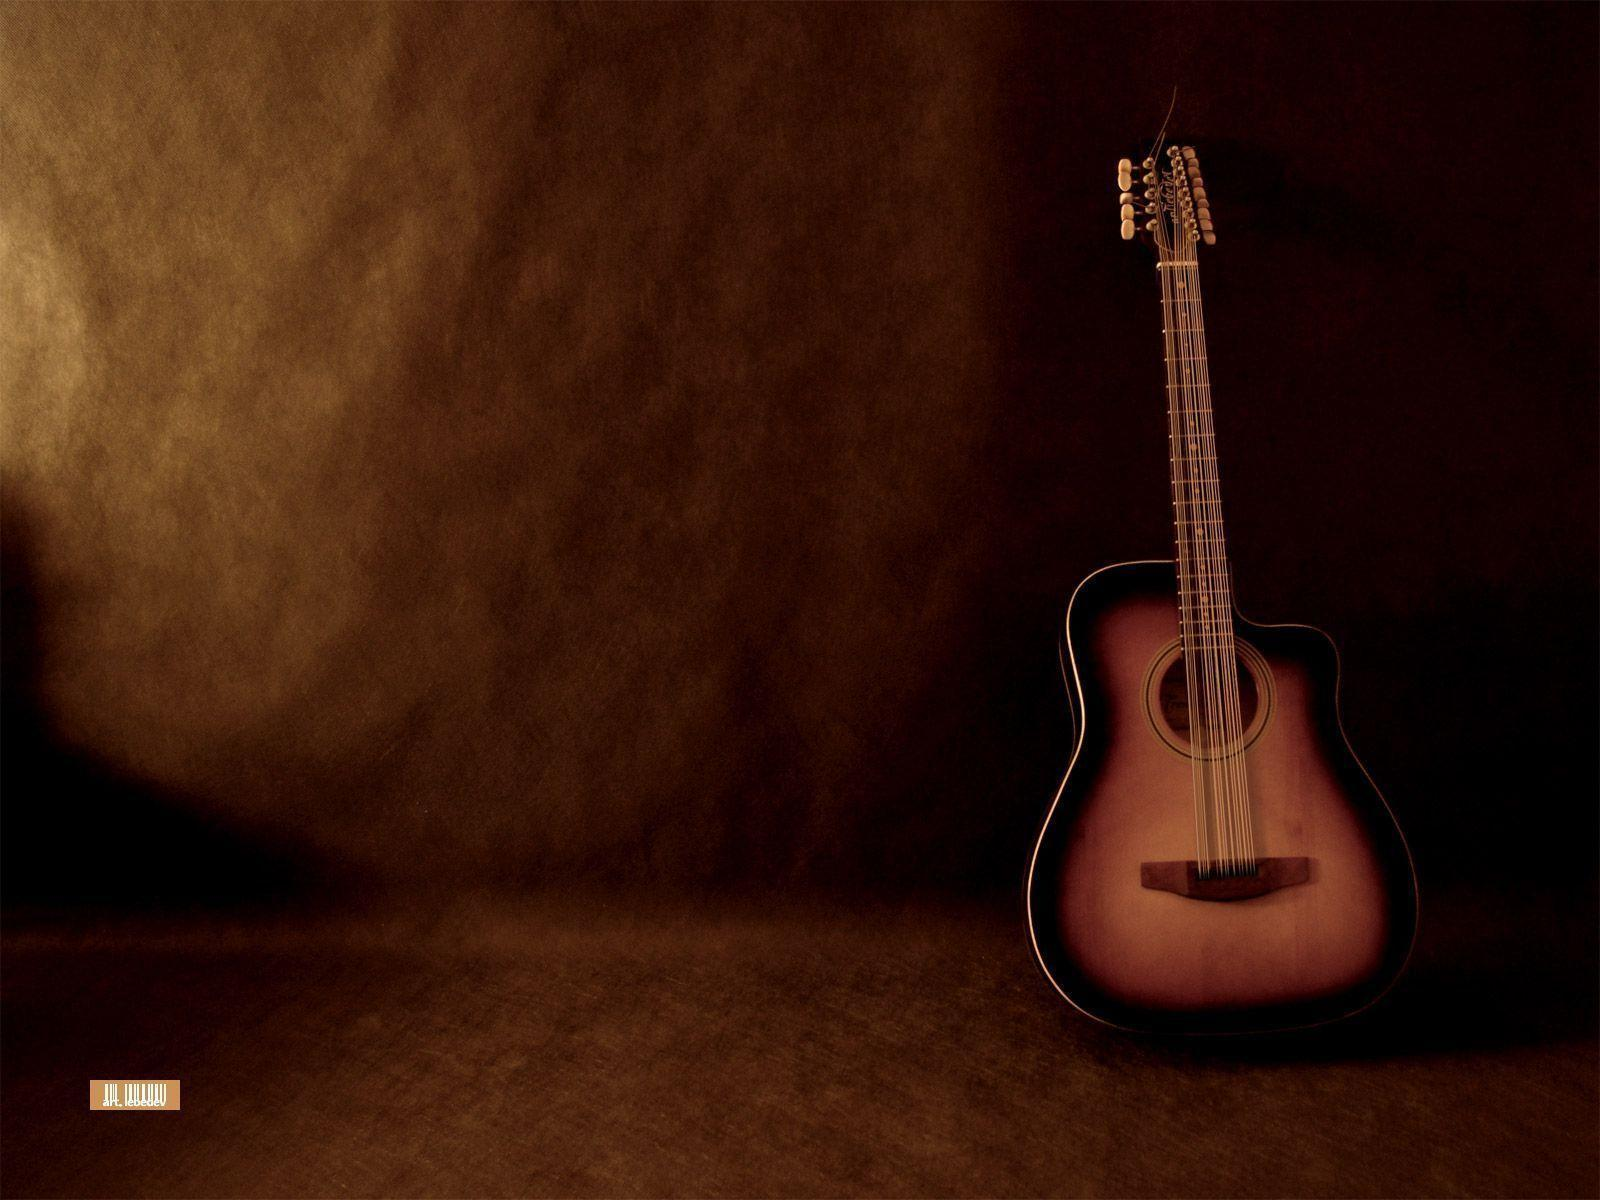 Guitar Image Hd Hd Background Wallpaper 43 HD Wallpapers | www.